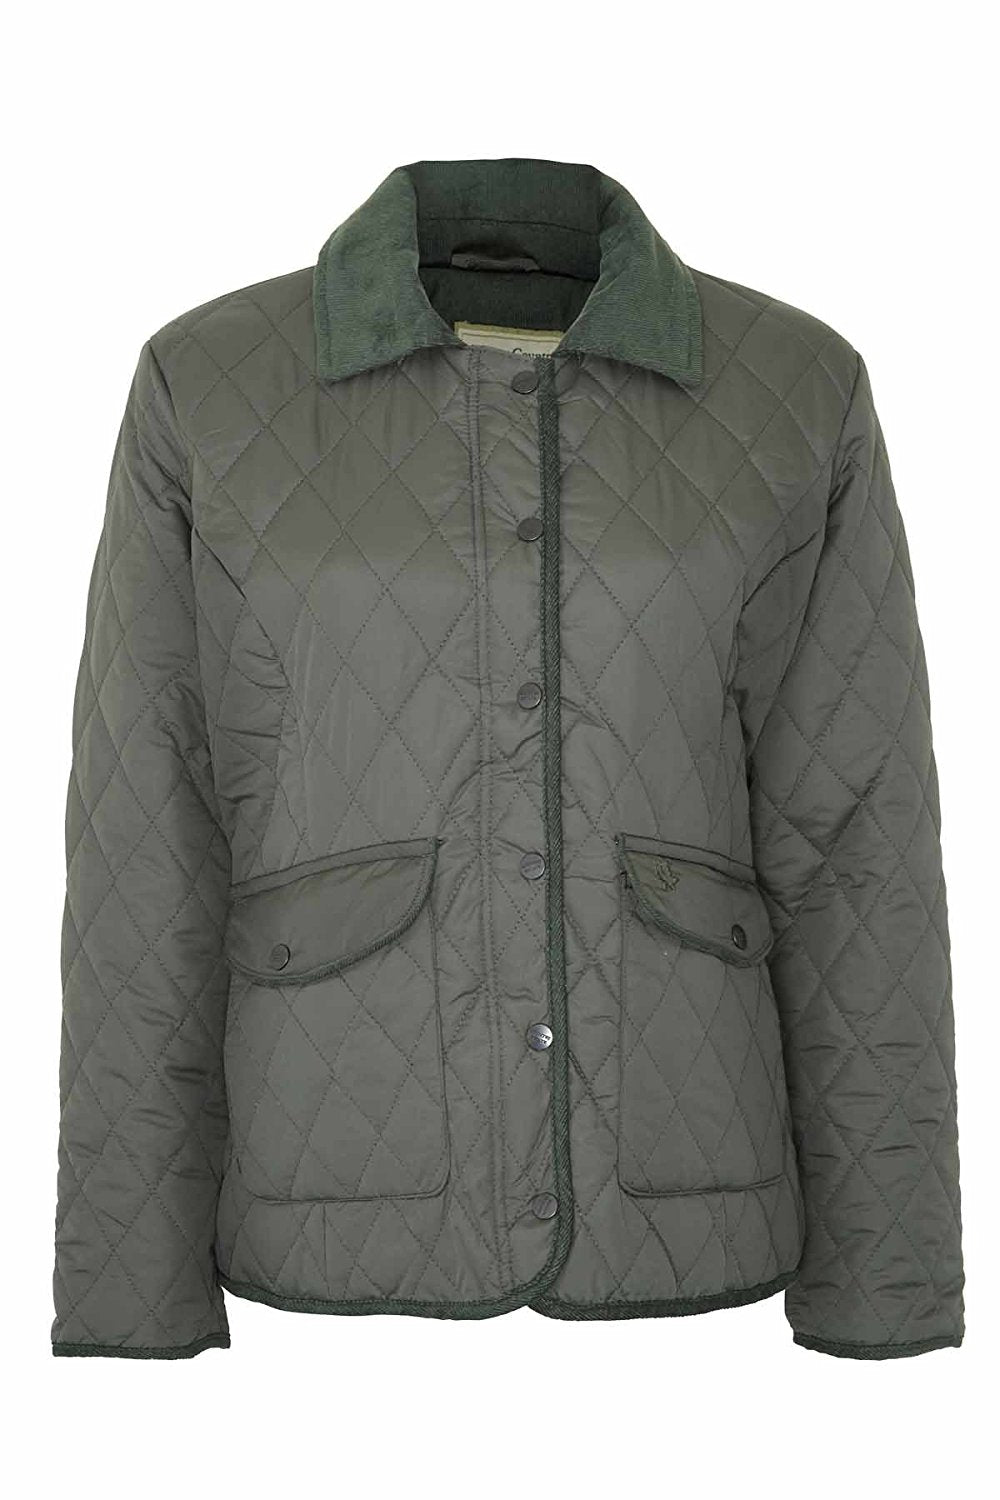 Champion Aylesbury Quilted Jacket | Black, Olive, Red, Plum